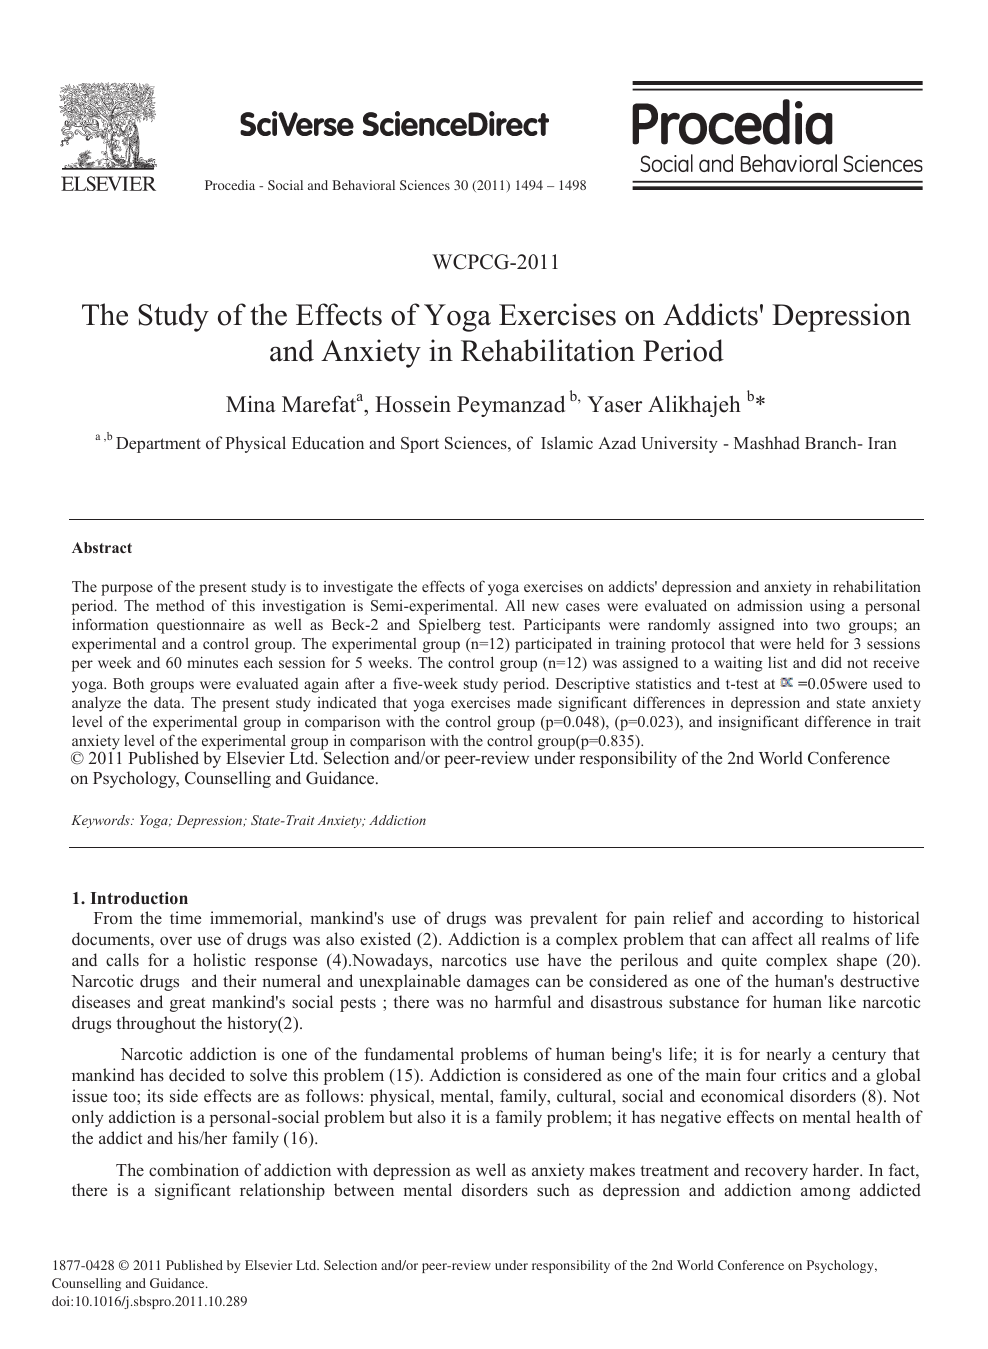 The Study of the Effects of Yoga Exercises on Addicts